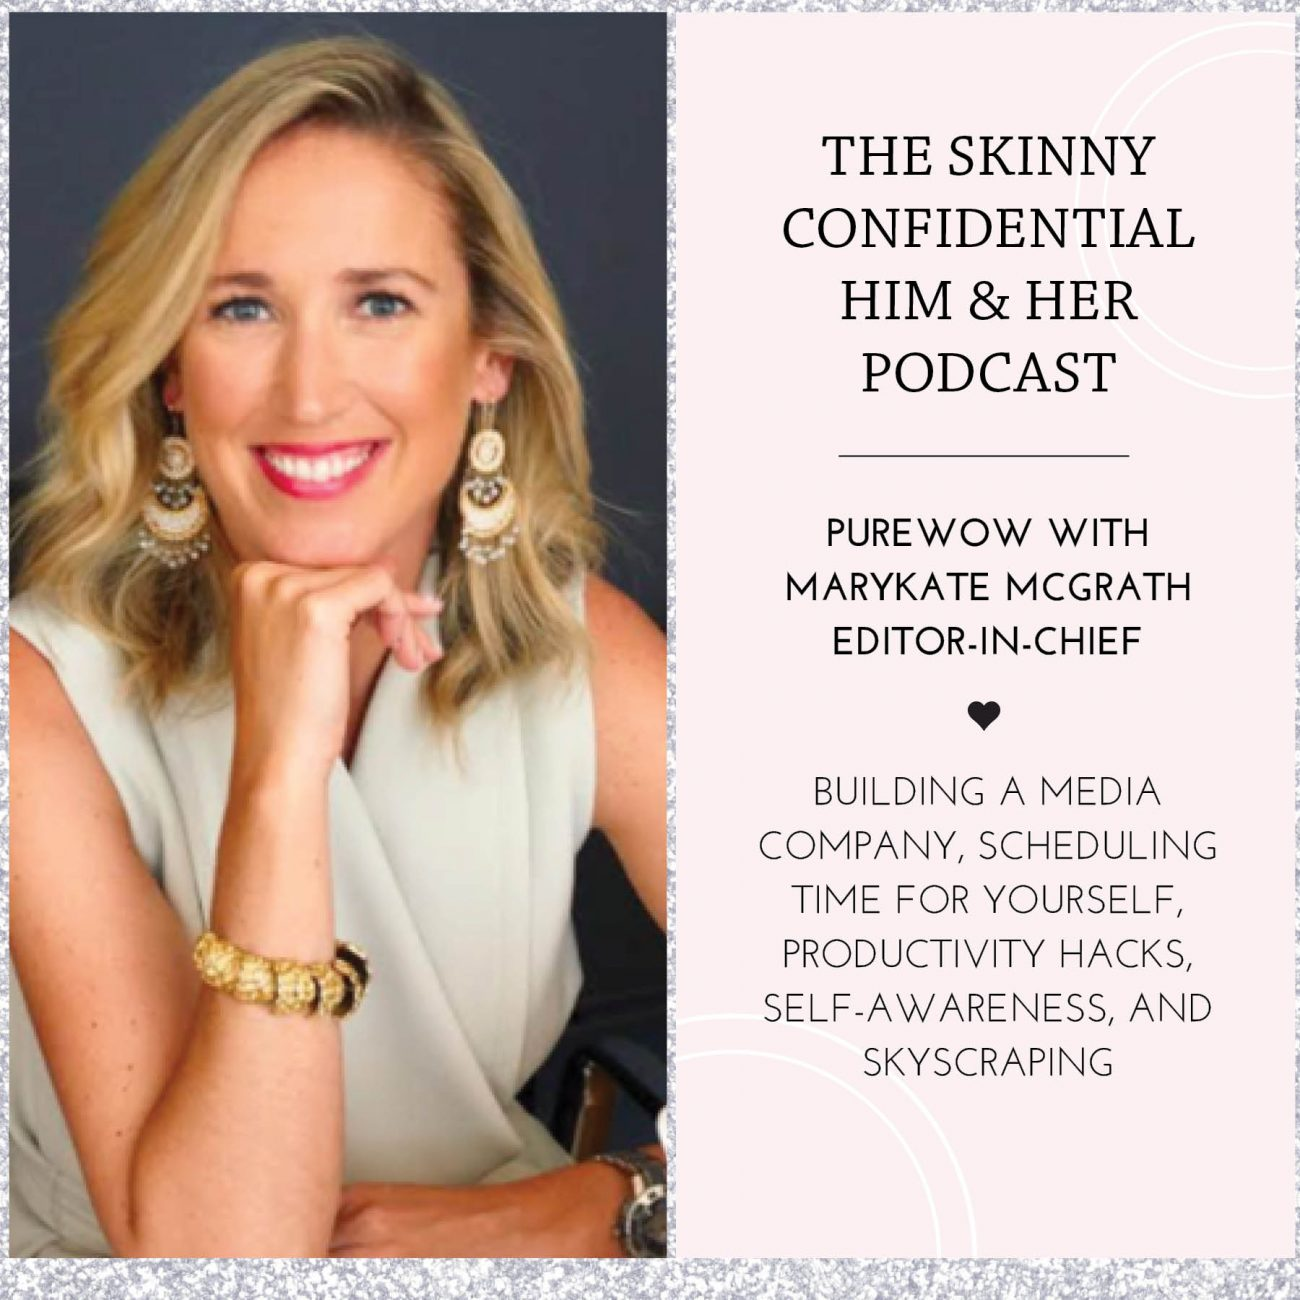 purewow mary kate mcgrath podcast by the skinny confidential